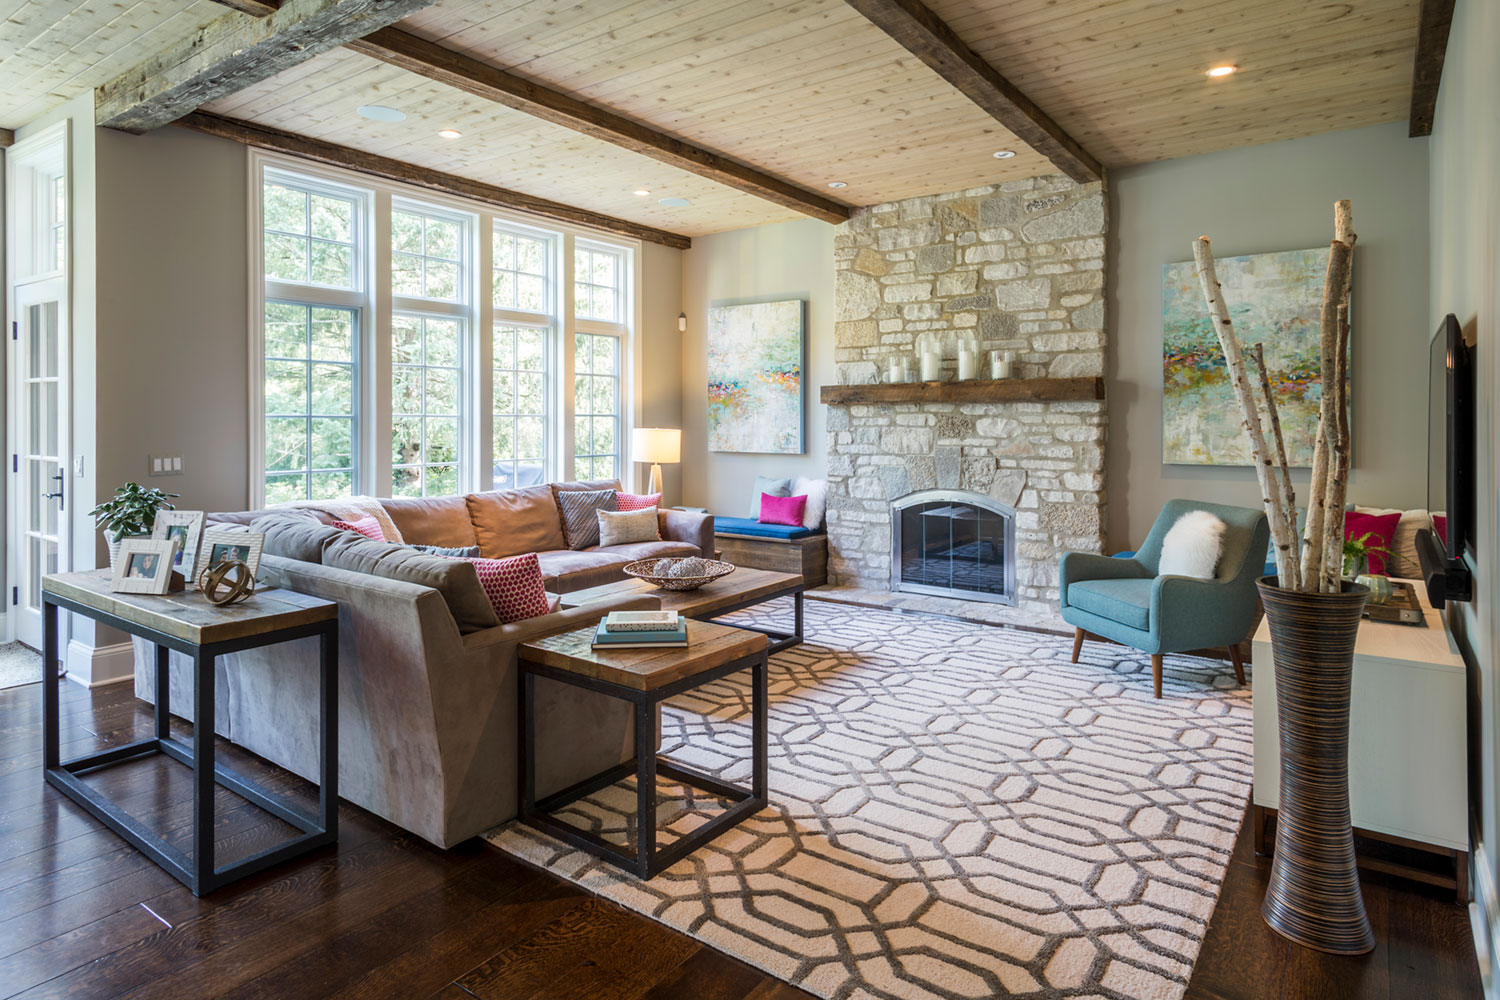 Rustic And Modern Living Room Chicago Interior Design Rustic Modern Mia Rao Design